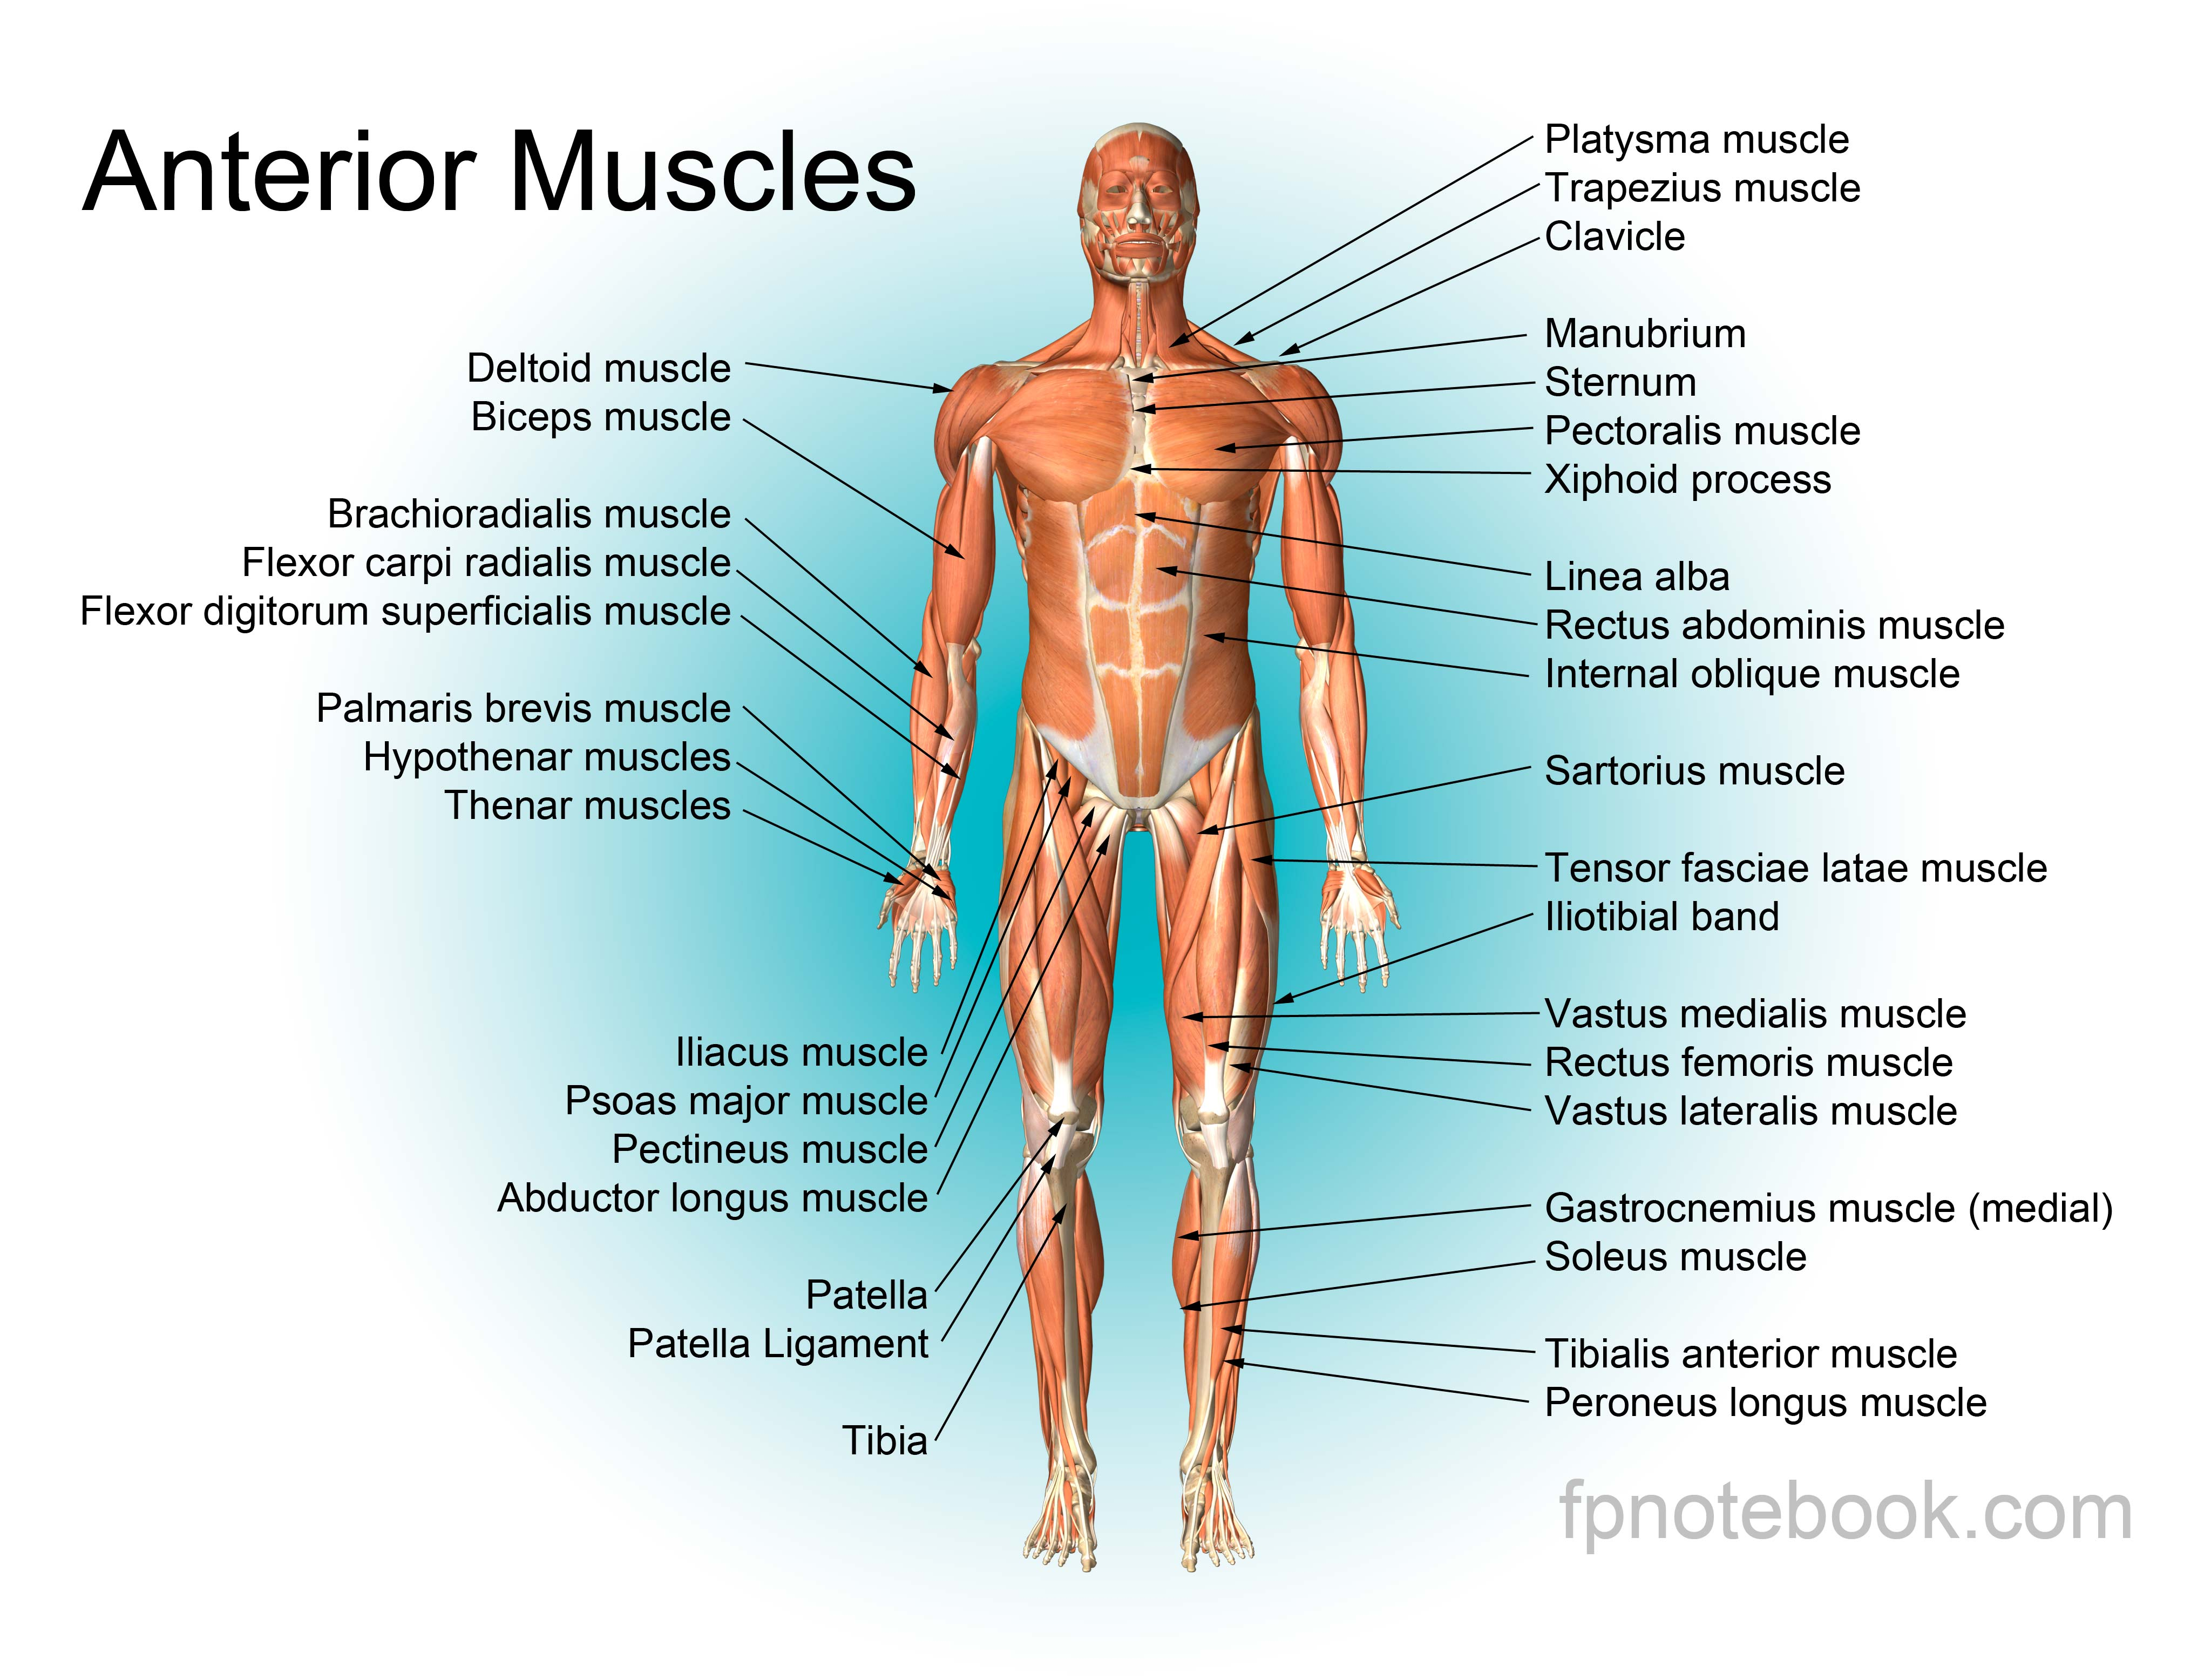 musculoskeletal anatomy, Muscles